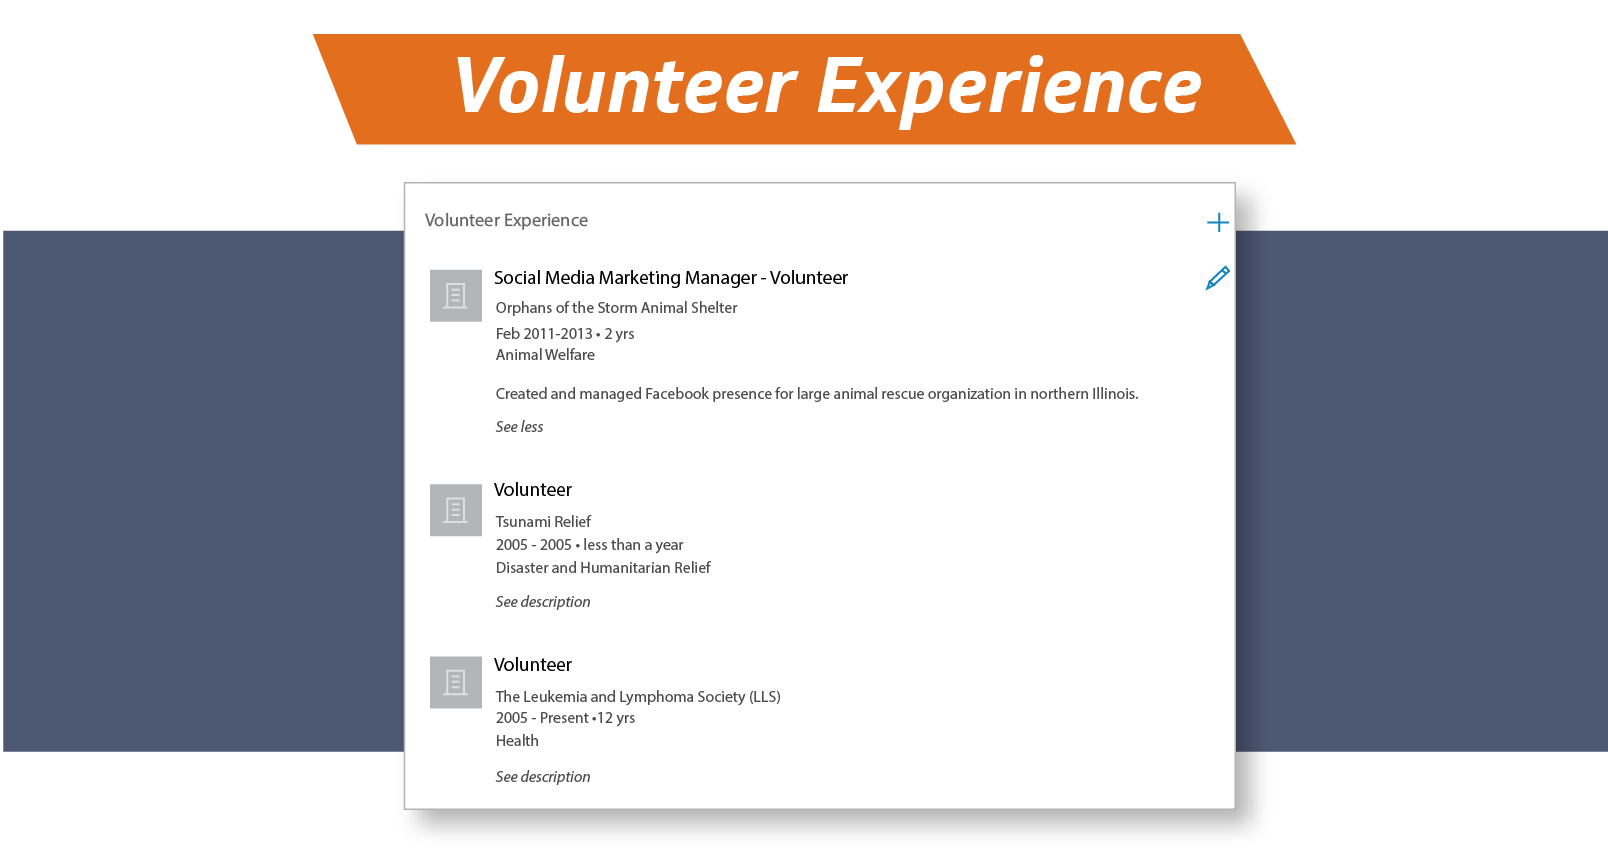 Volunteer experience on LinkedIn